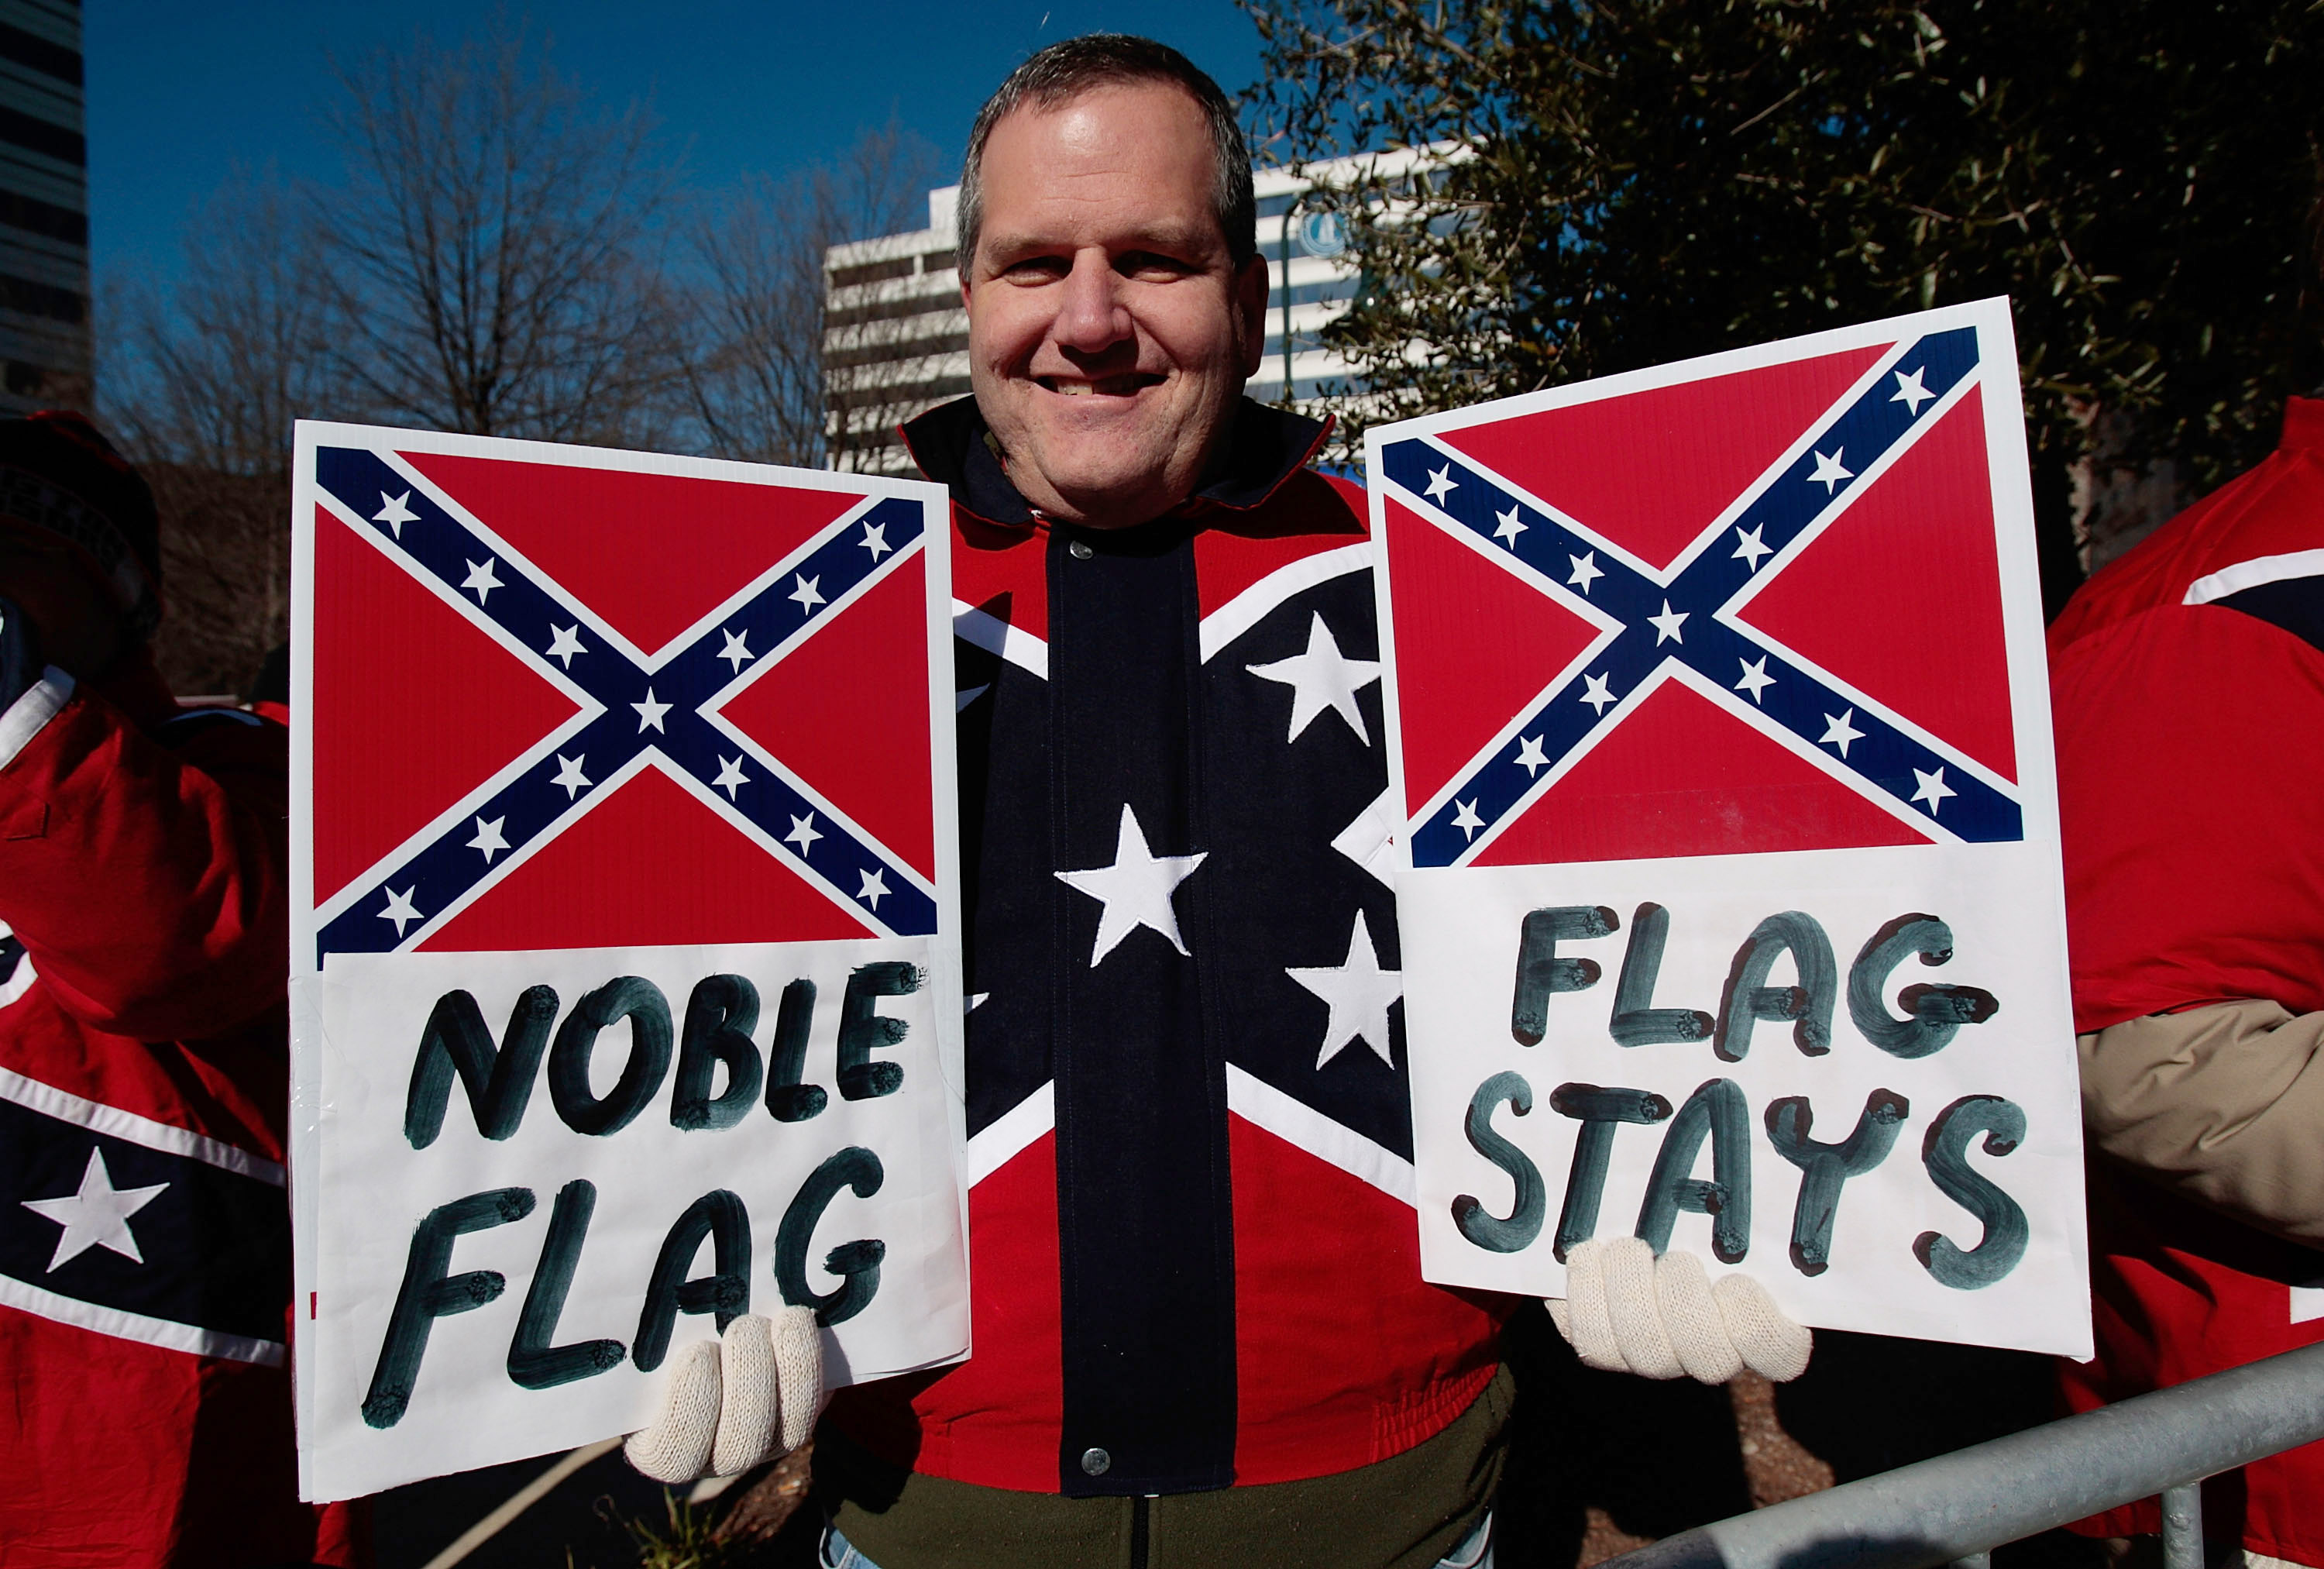 COLUMBIA, SC - JANUARY 21:  Dr. John Cobin of Greenville, South Carolina displays signs in support of displaying the Confederate flag at a Martin Luther King Day rally January 21, 2008 in Columbia, South Carolina. (Chris Hondros/Getty Images)